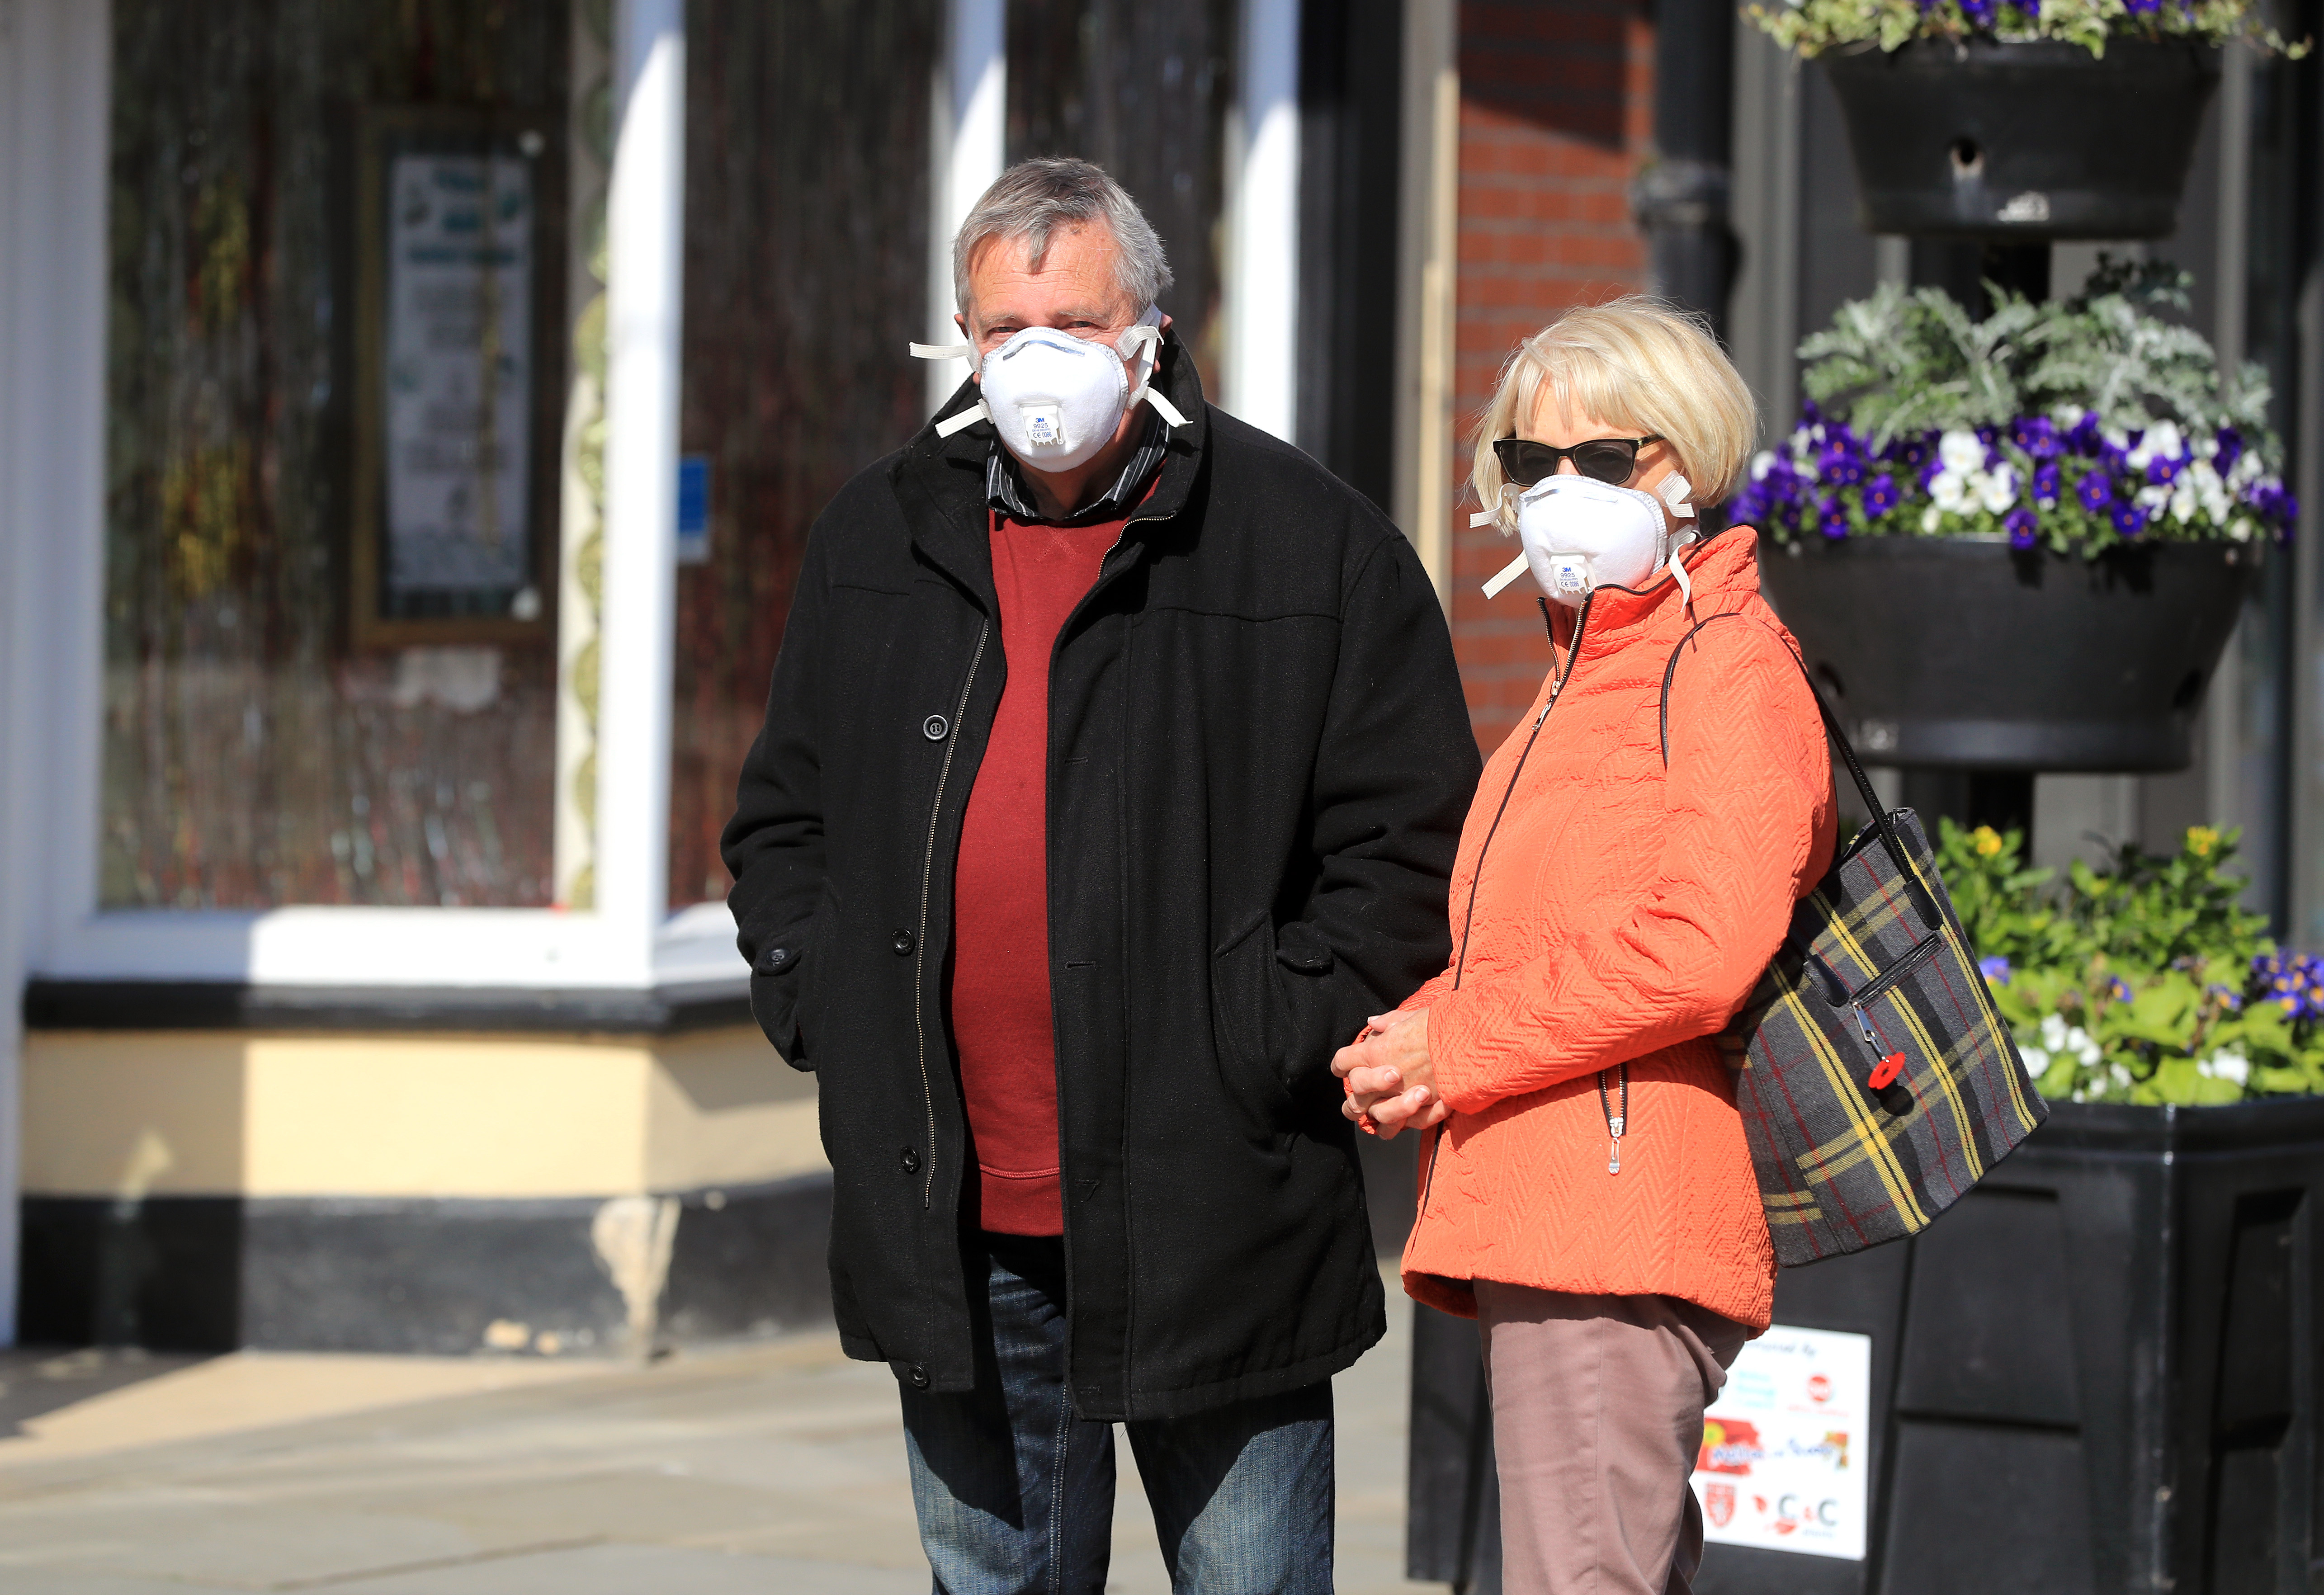 Members of the public wearing masks queue to enter shops in Melton Mowbray as the UK continues in lockdown to help curb the spread of the coronavirus.